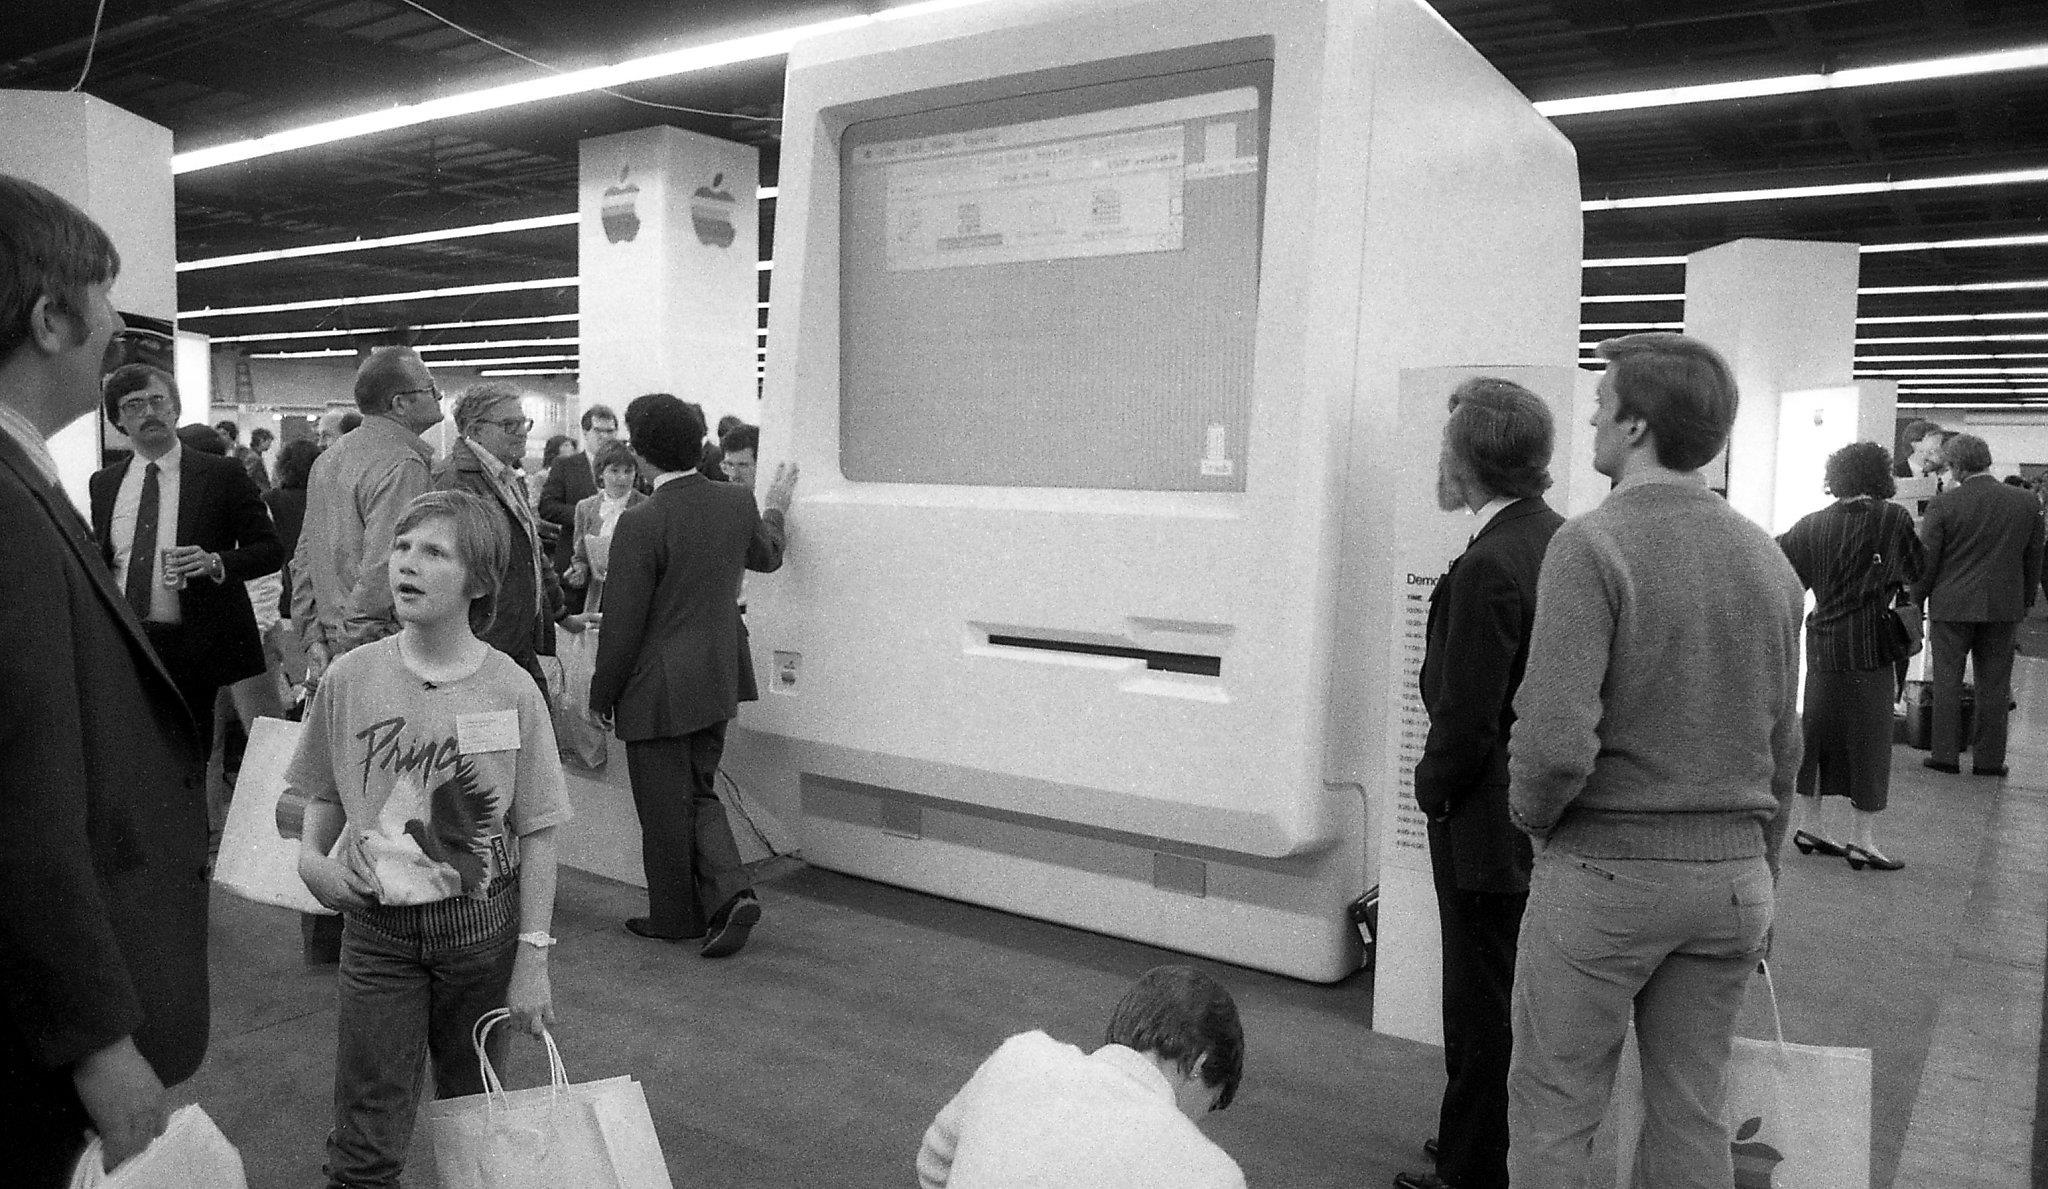 Photos of the first Macworld in 1985, and why Steve Jobs was a no-show